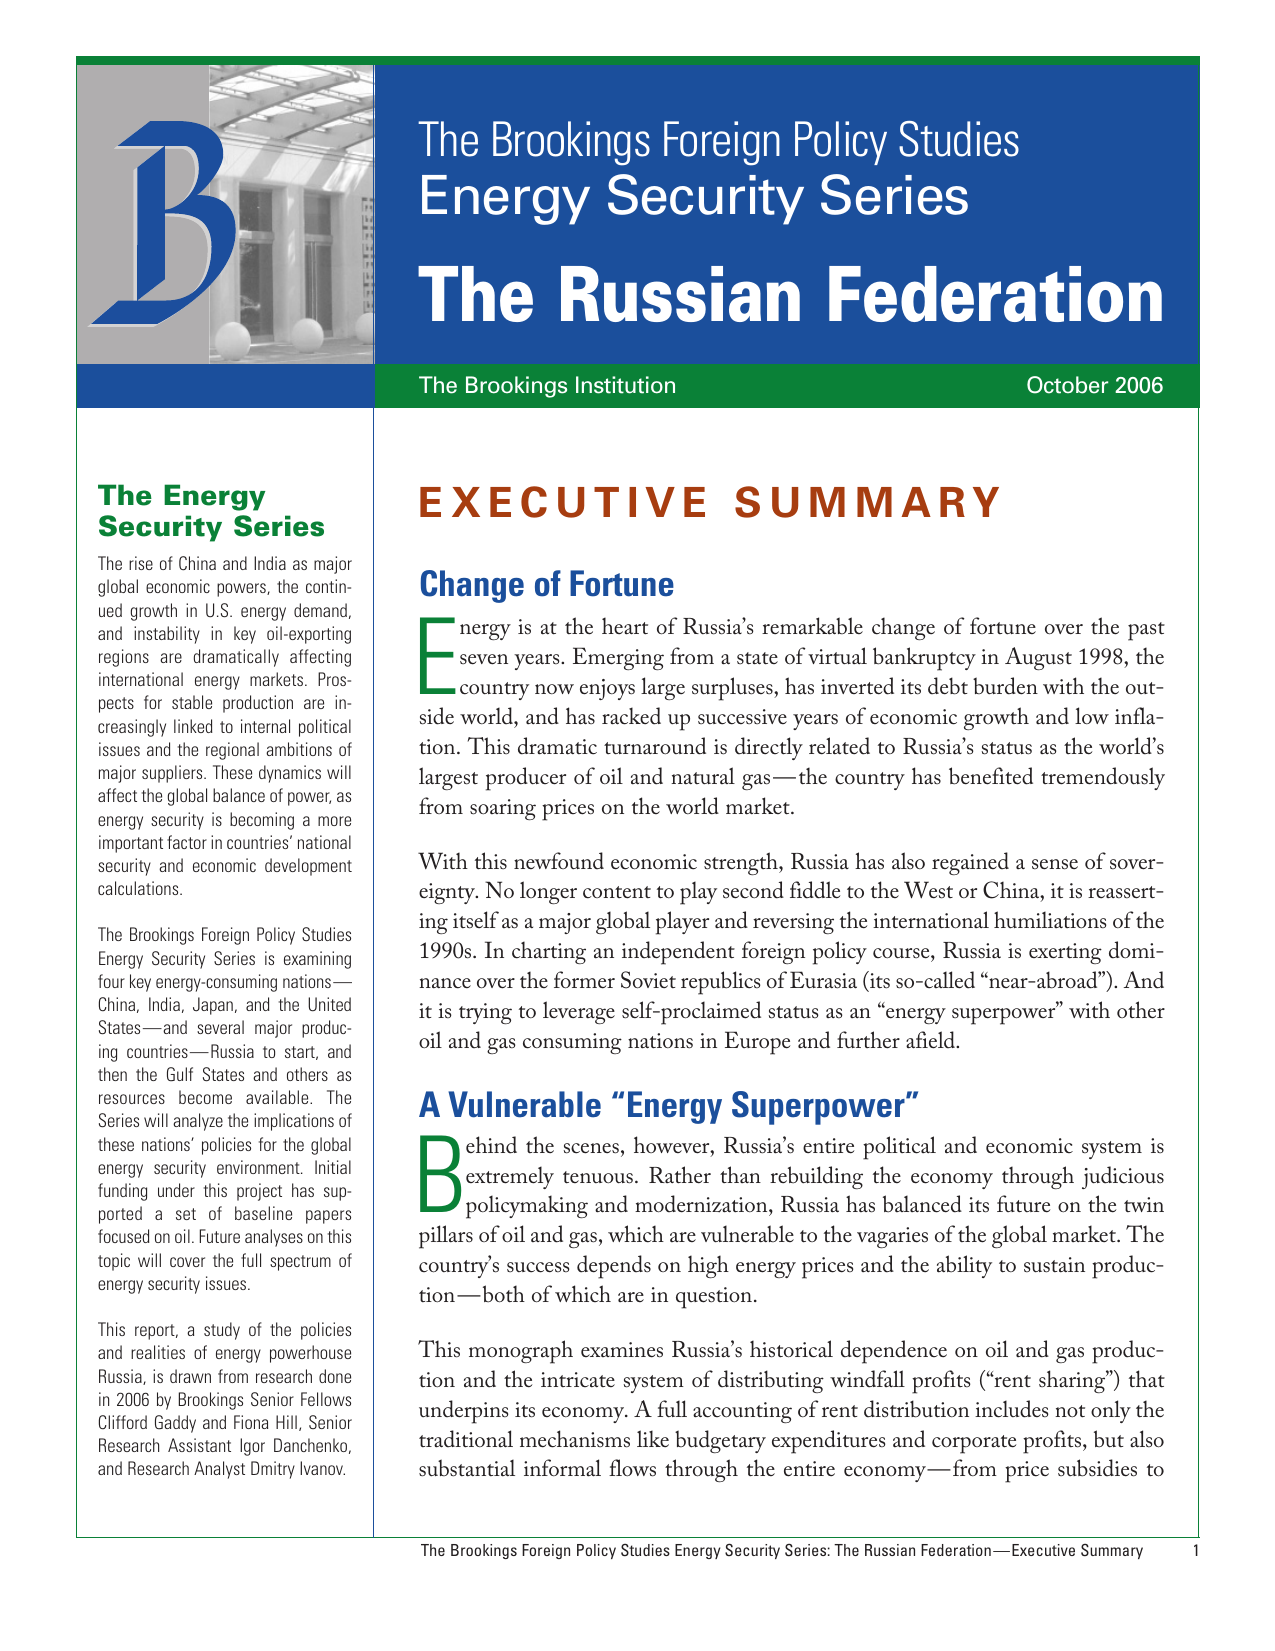 The Russian Federation Energy Security Series The Brookings